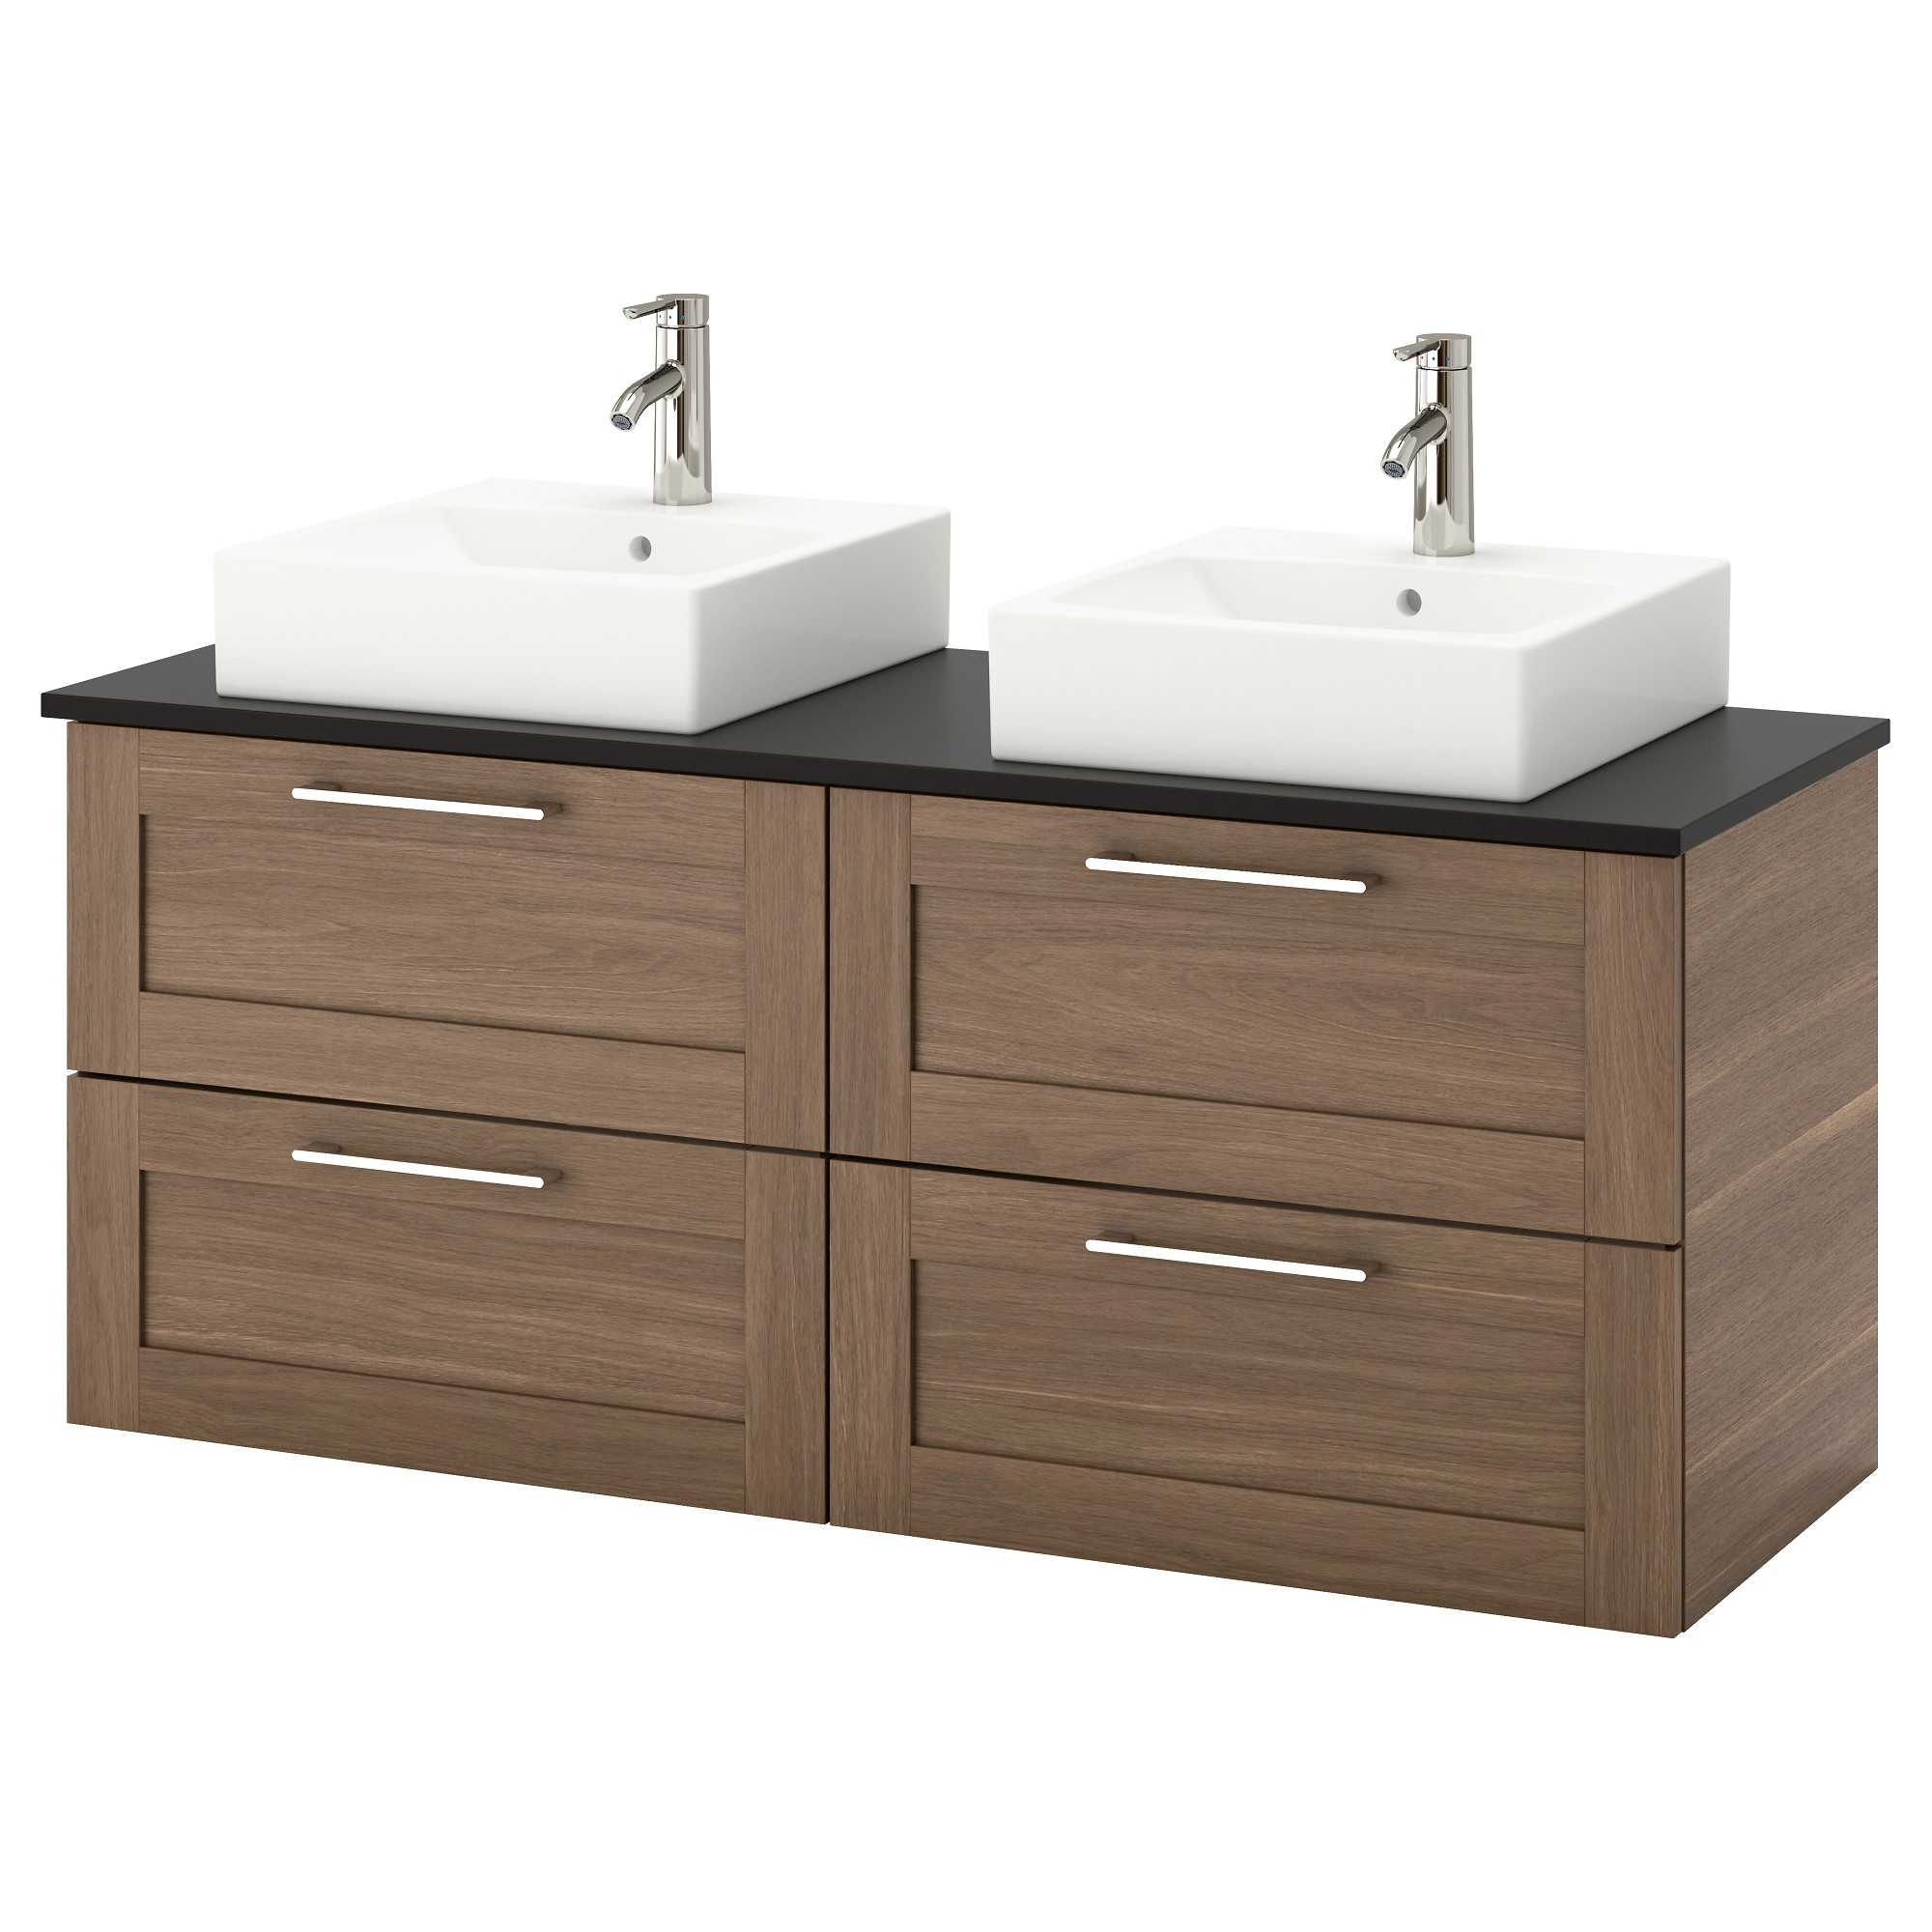 Bathroom Vanities Ikea Stunning Bathroom Vanities Countertops Ikea Concept